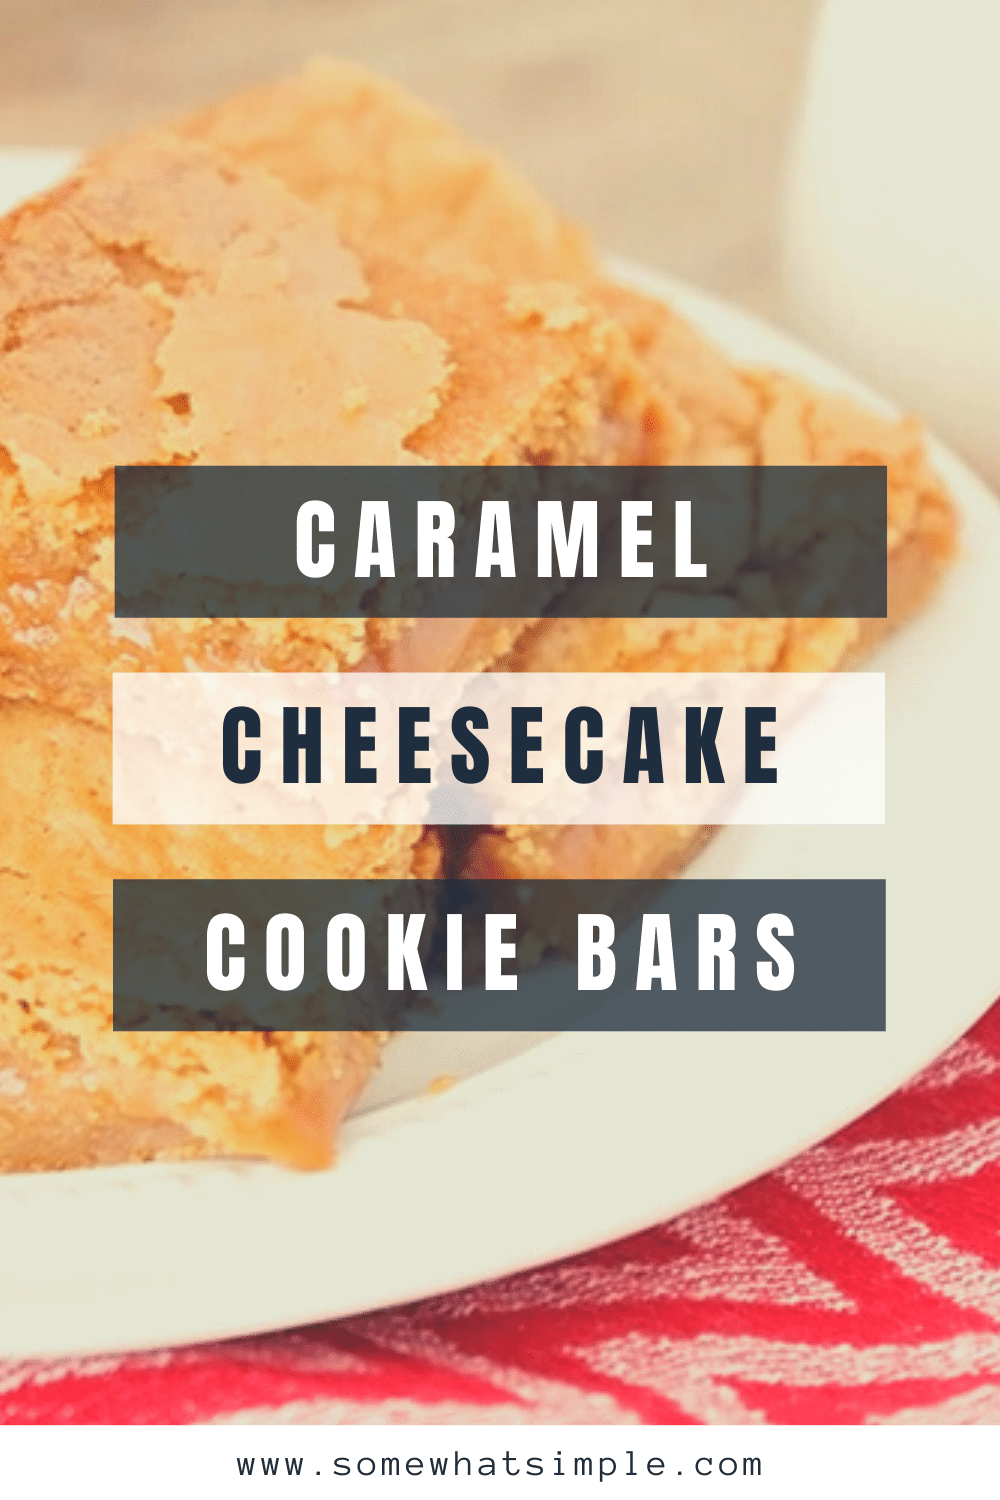 Caramel cheesecake cookie bars are a delicious salty & sweet dessert that's super easy to make! All of the delicious cheesecake flavors drizzled with caramel, all in an amazing cookie bar. This recipe is easy to make and is guaranteed to knock your socks off. via @somewhatsimple